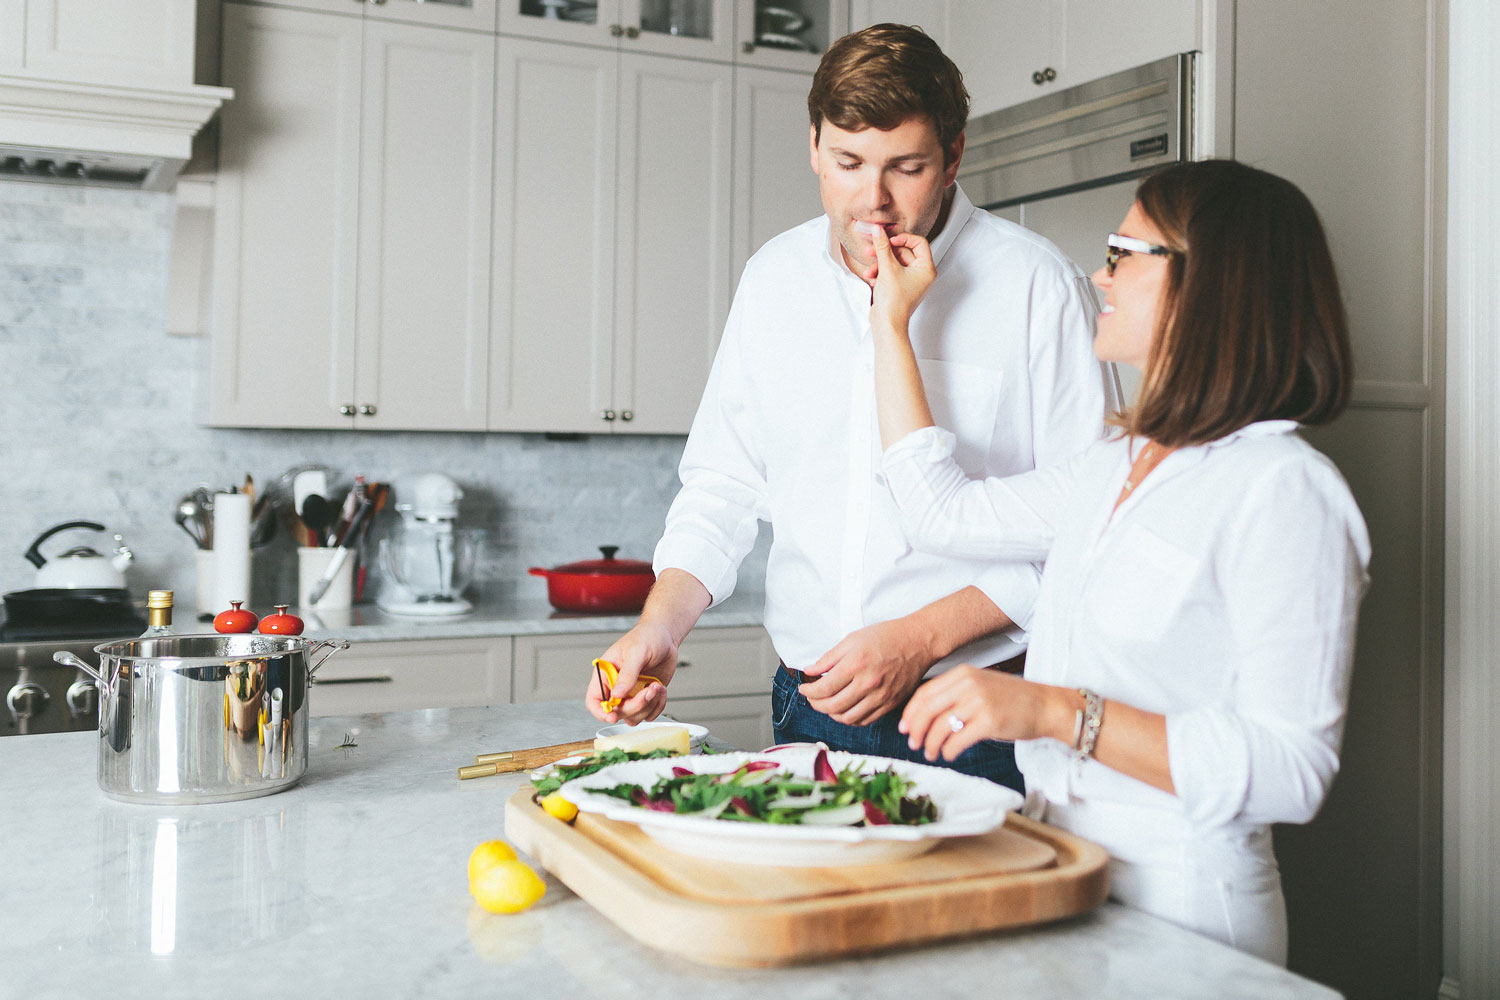 At home engagement session photo shoot in the kitchen feeding groom salad e-session ideas